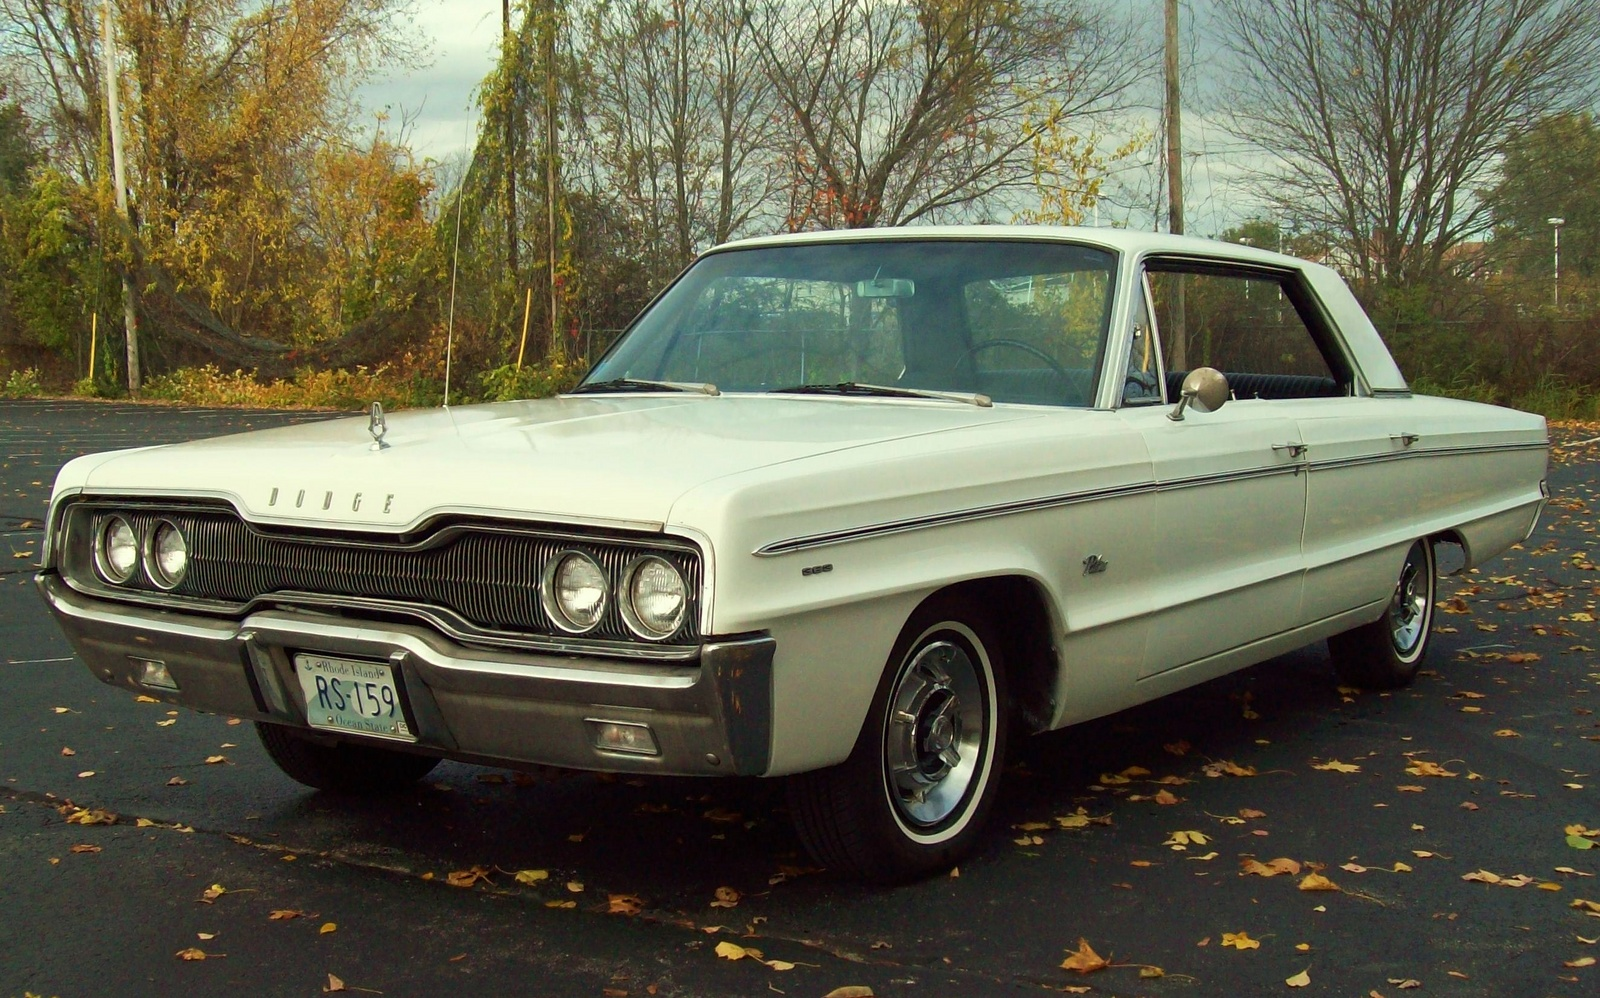 1966 Dodge Polara - Overview - CarGurus